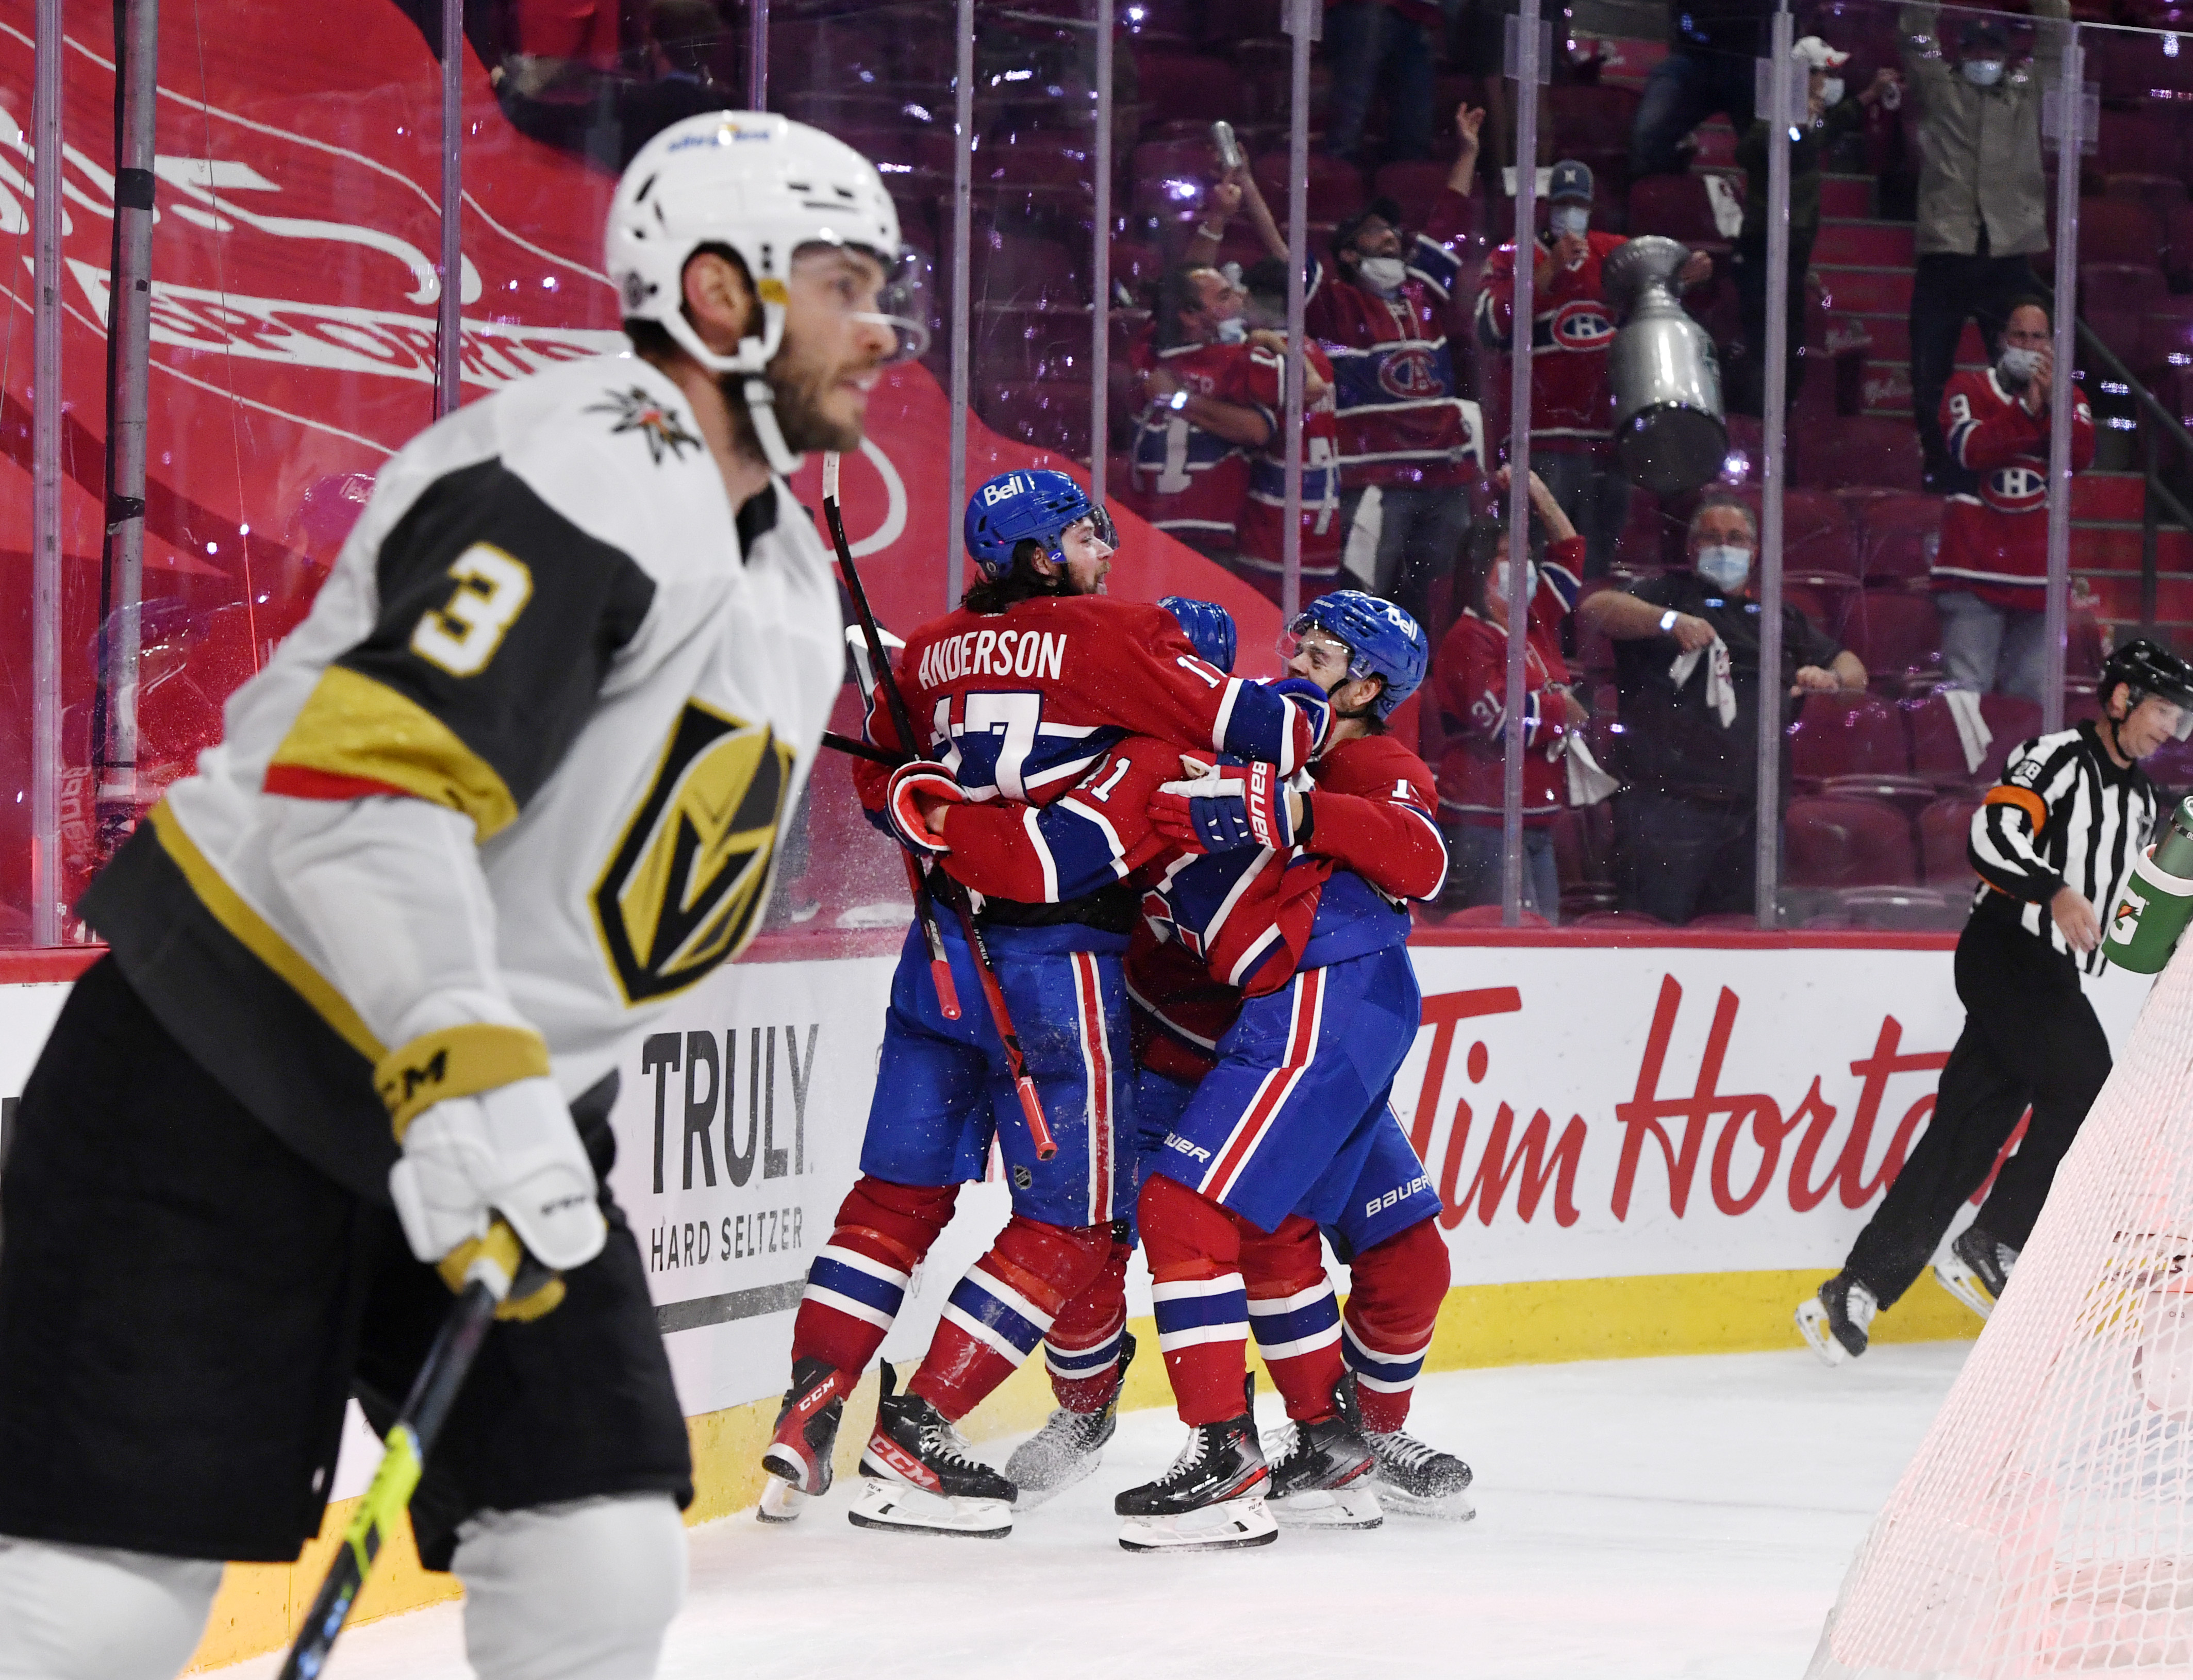 Montreal Canadiens forward Josh Anderson (17) reacts with teammates forward Paul Byron (41) and forward Jesperi Kotkaniemi (15) after scoring the winning goal during the overtime period in game three of the 2021 Stanley Cup Semifinals against the Vegas Golden Knights at the Bell Centre.